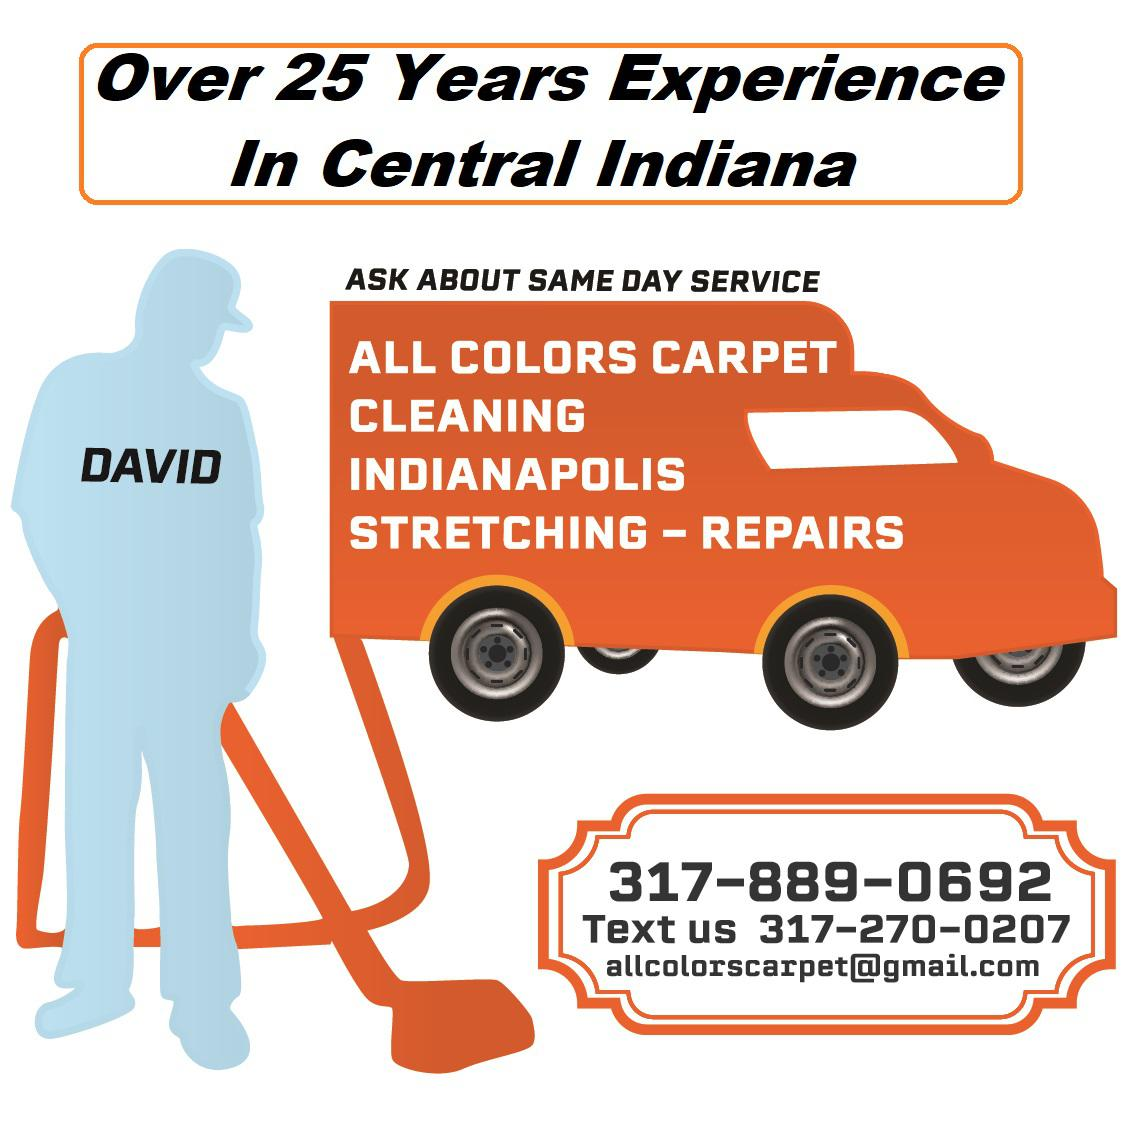 All Colors Carpet Cleaning Indianapolis Stretching-Repairs